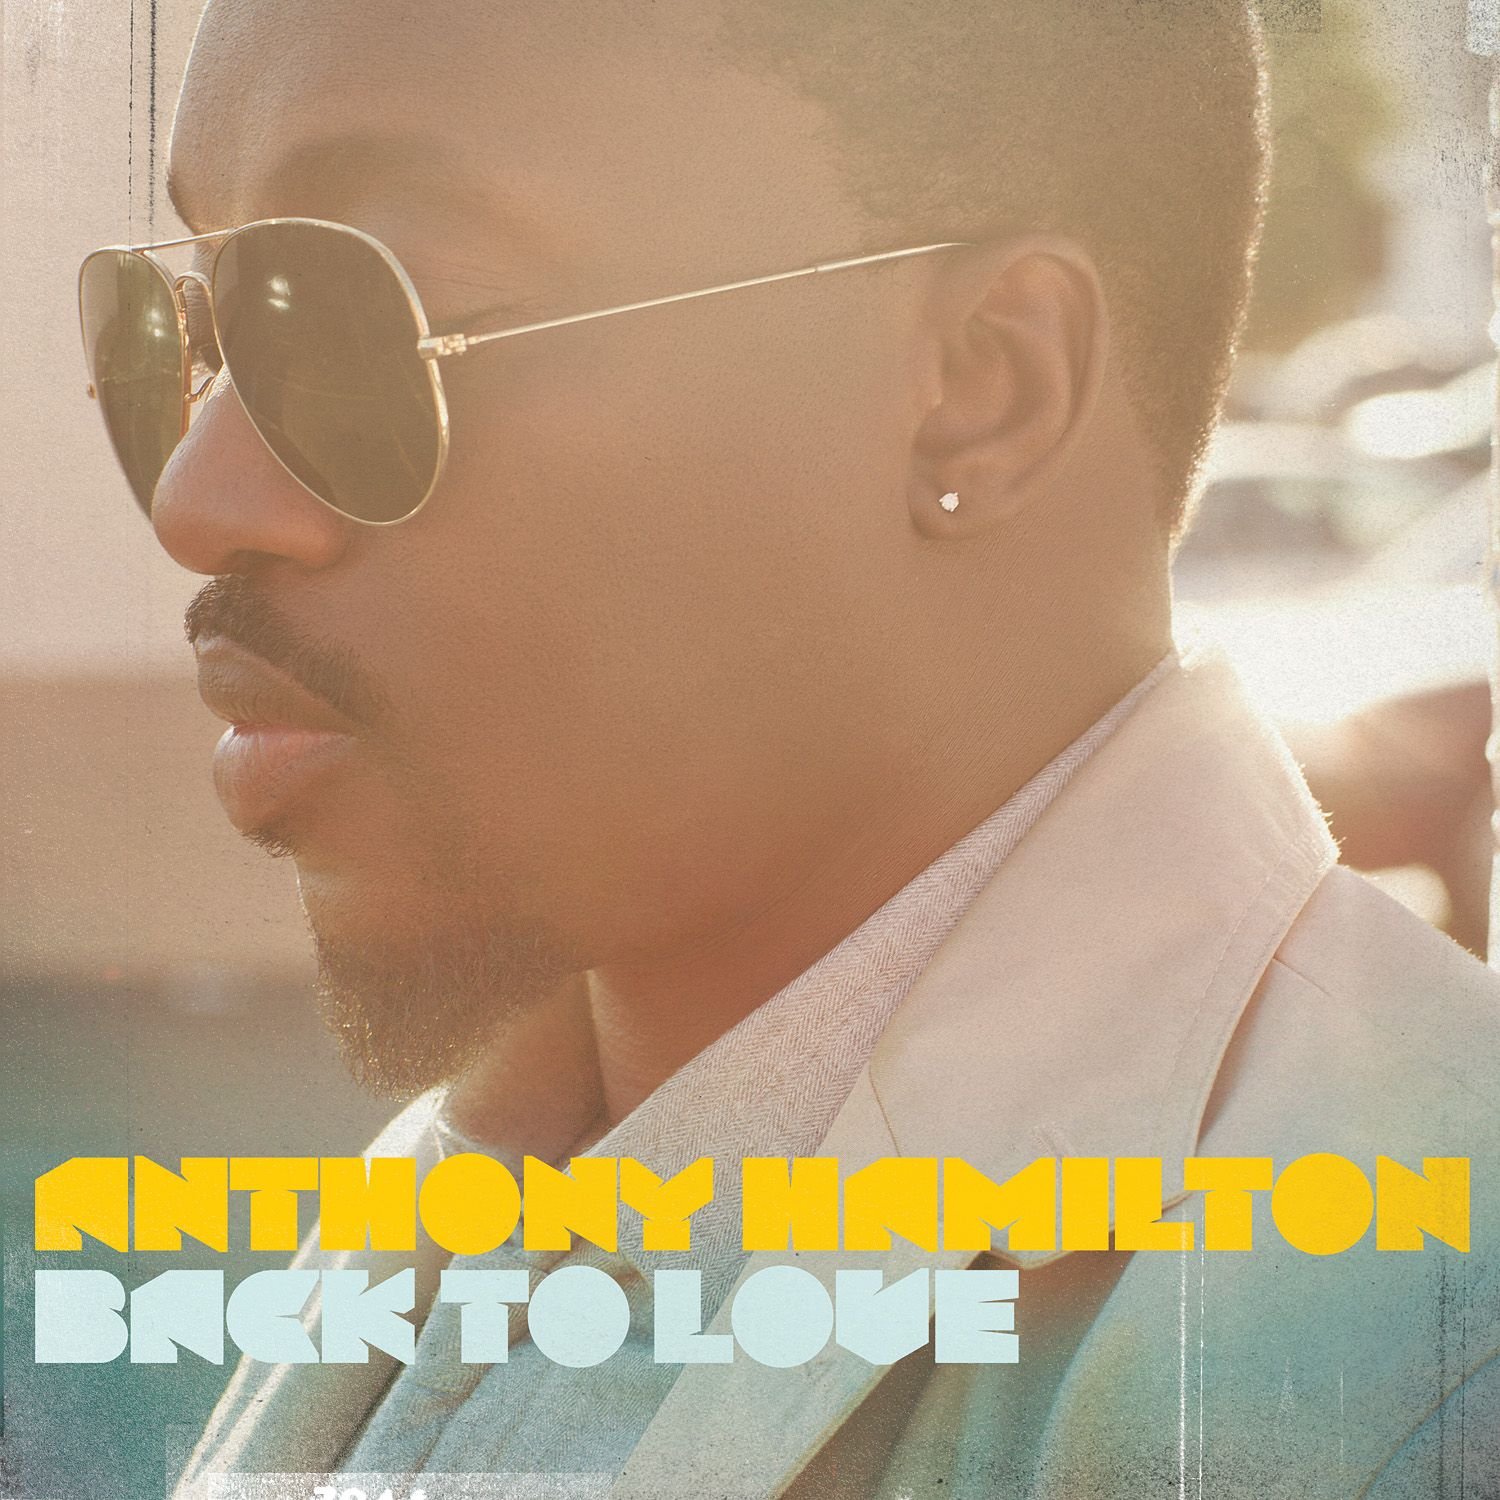 Anthony hamilton is sexy